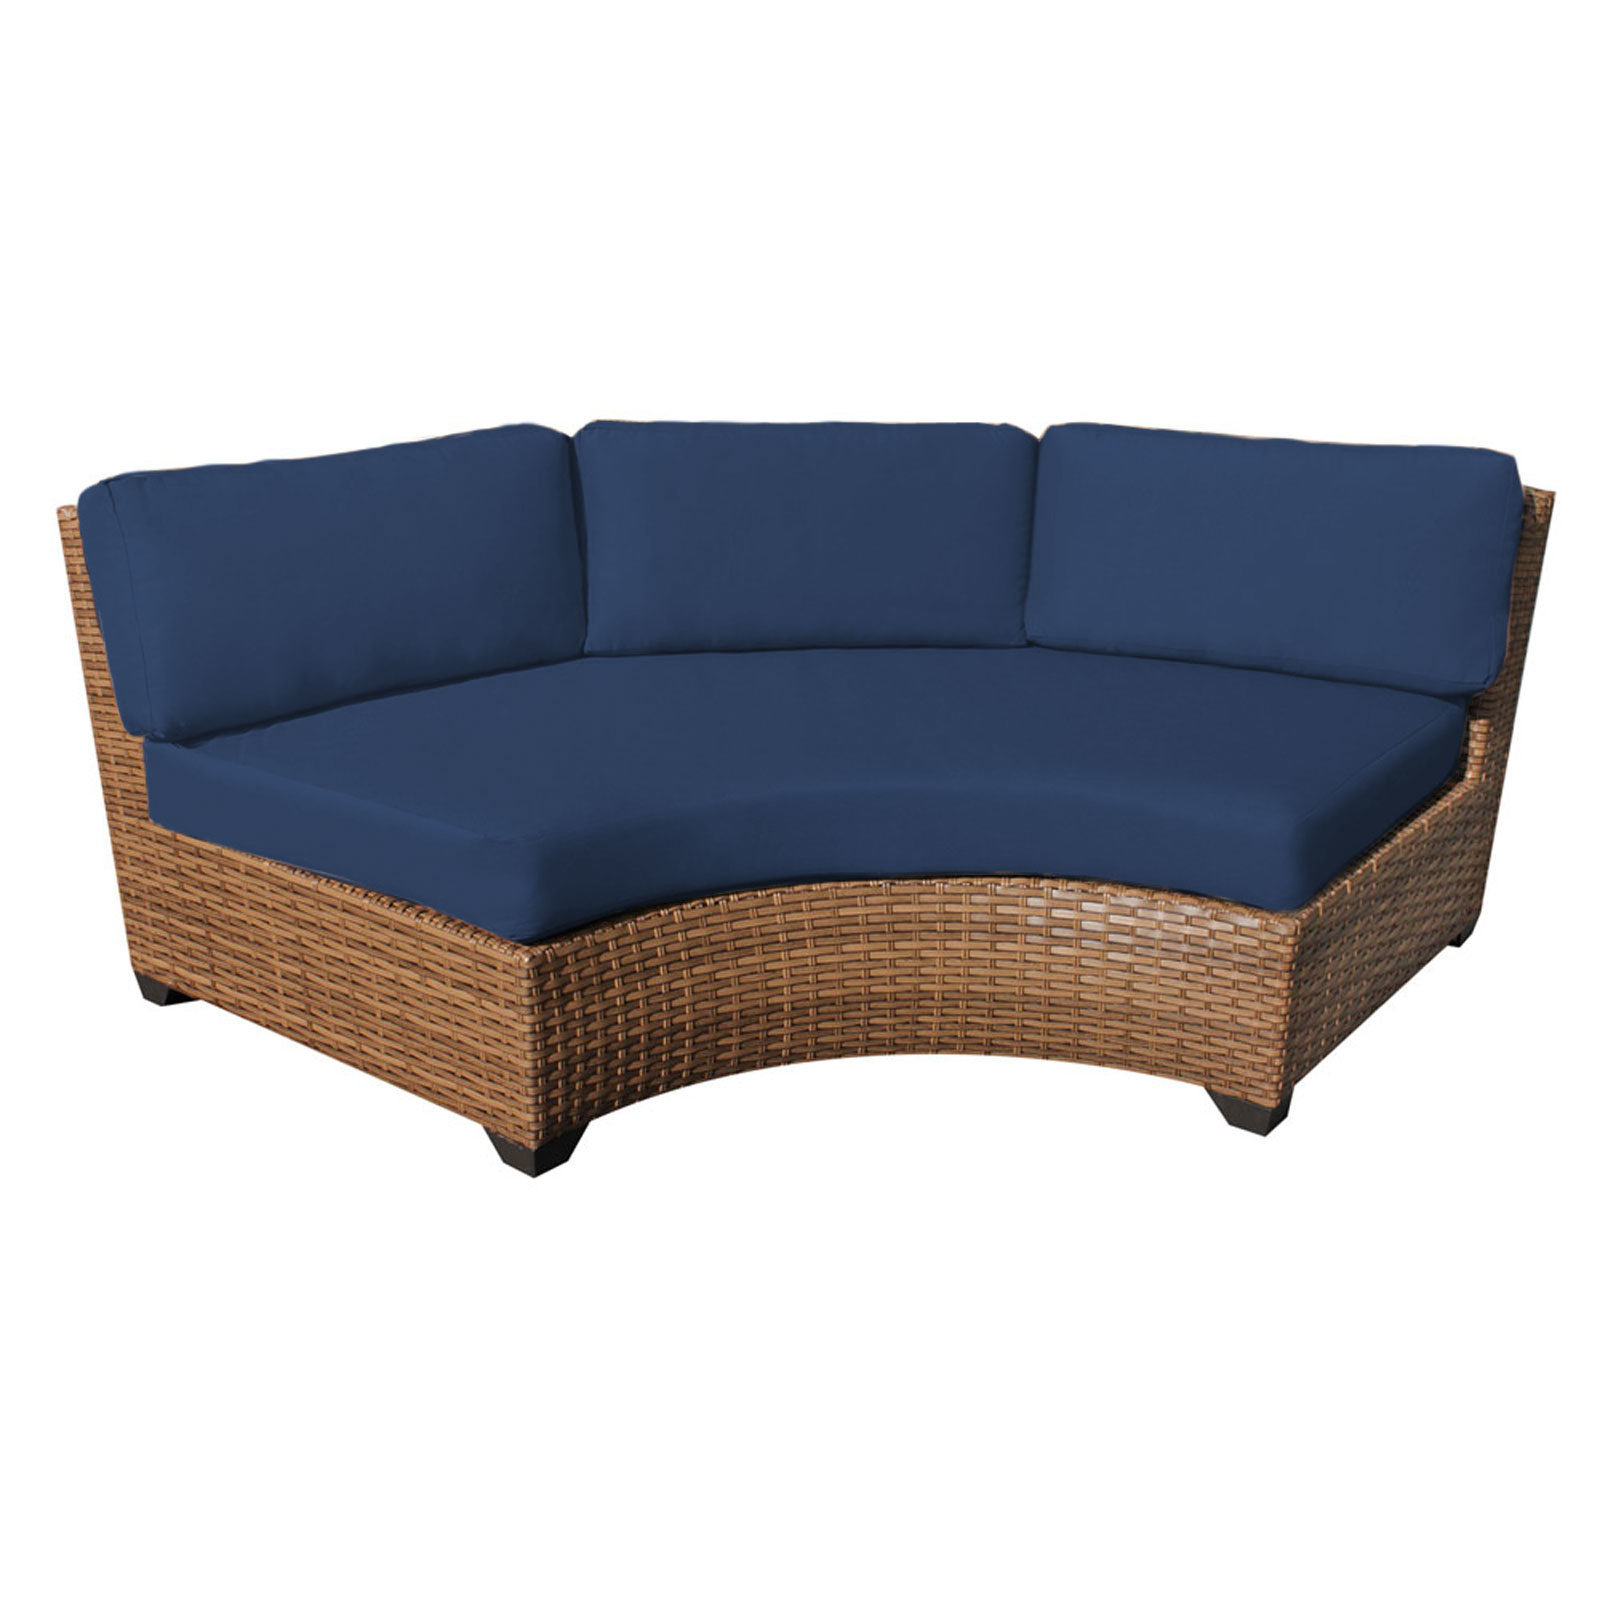 Widely Used Waterbury Curved Armless Sofa With Cushions Inside Waterbury Curved Armless Sofa With Cushions (View 20 of 20)